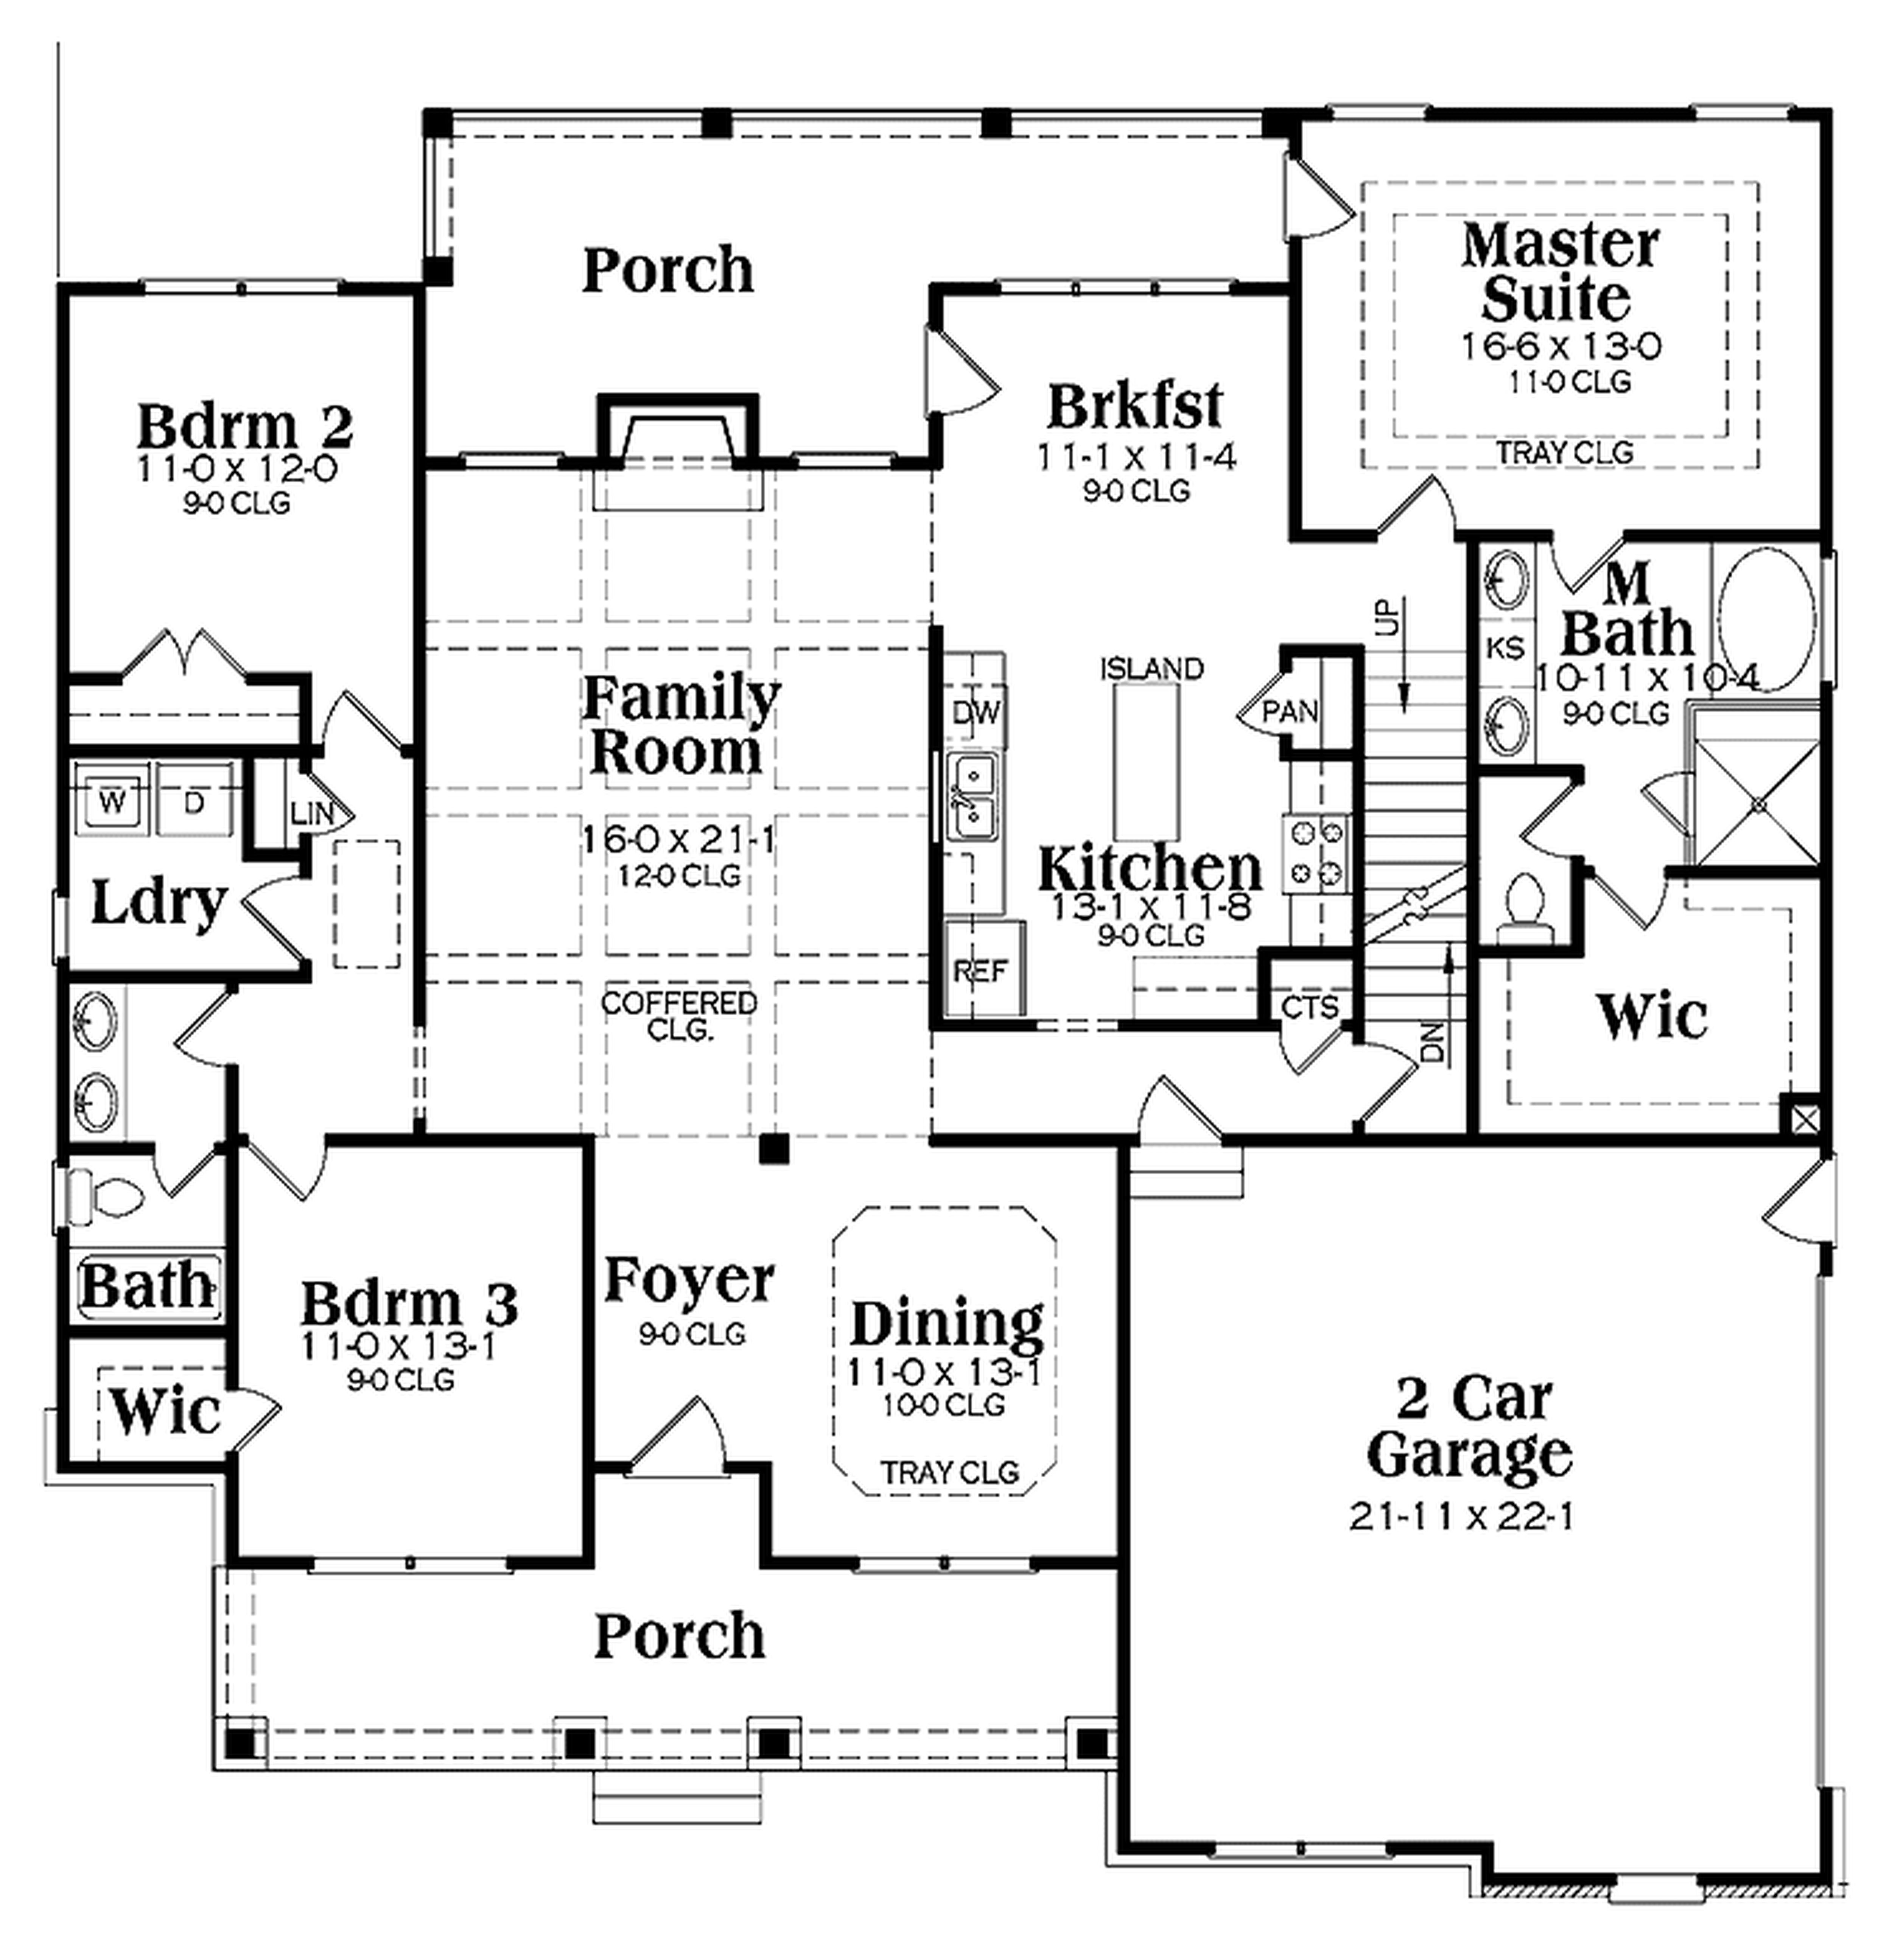 House floor plans  Small house interiors and House decorations on    House floor plans  Small house interiors and House decorations on Pinterest